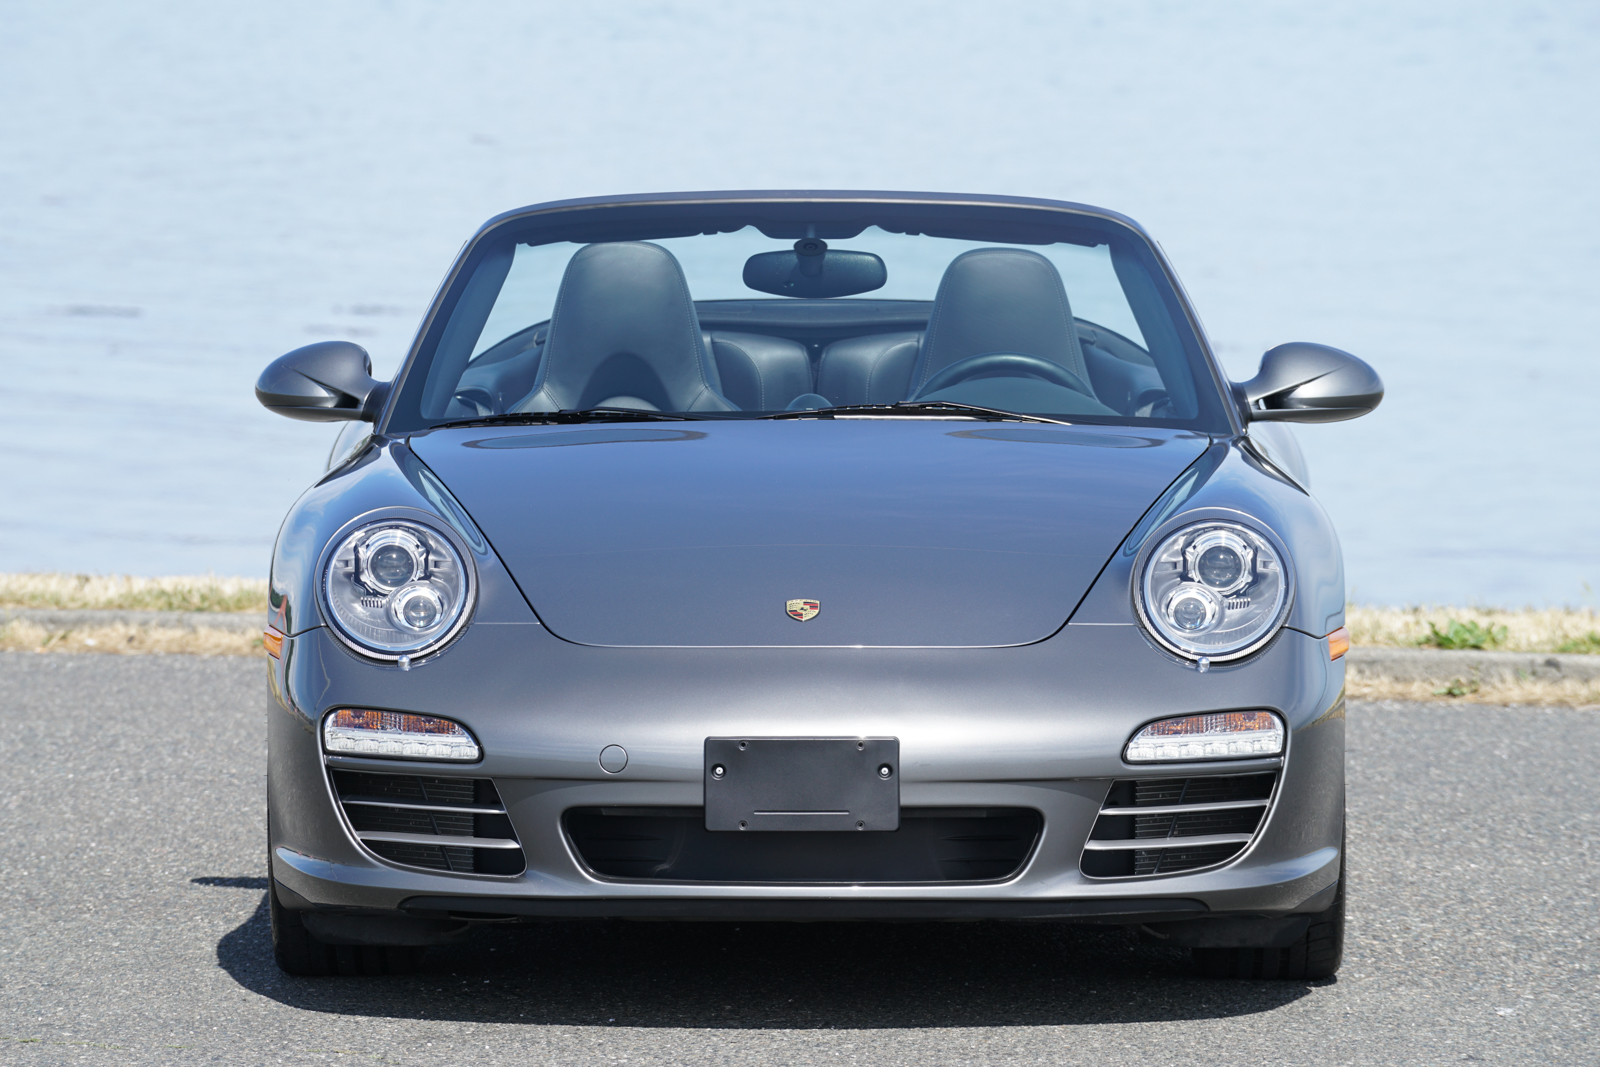 2011 porsche 911 carrera 4s cabriolet for sale silver arrow cars ltd. Black Bedroom Furniture Sets. Home Design Ideas